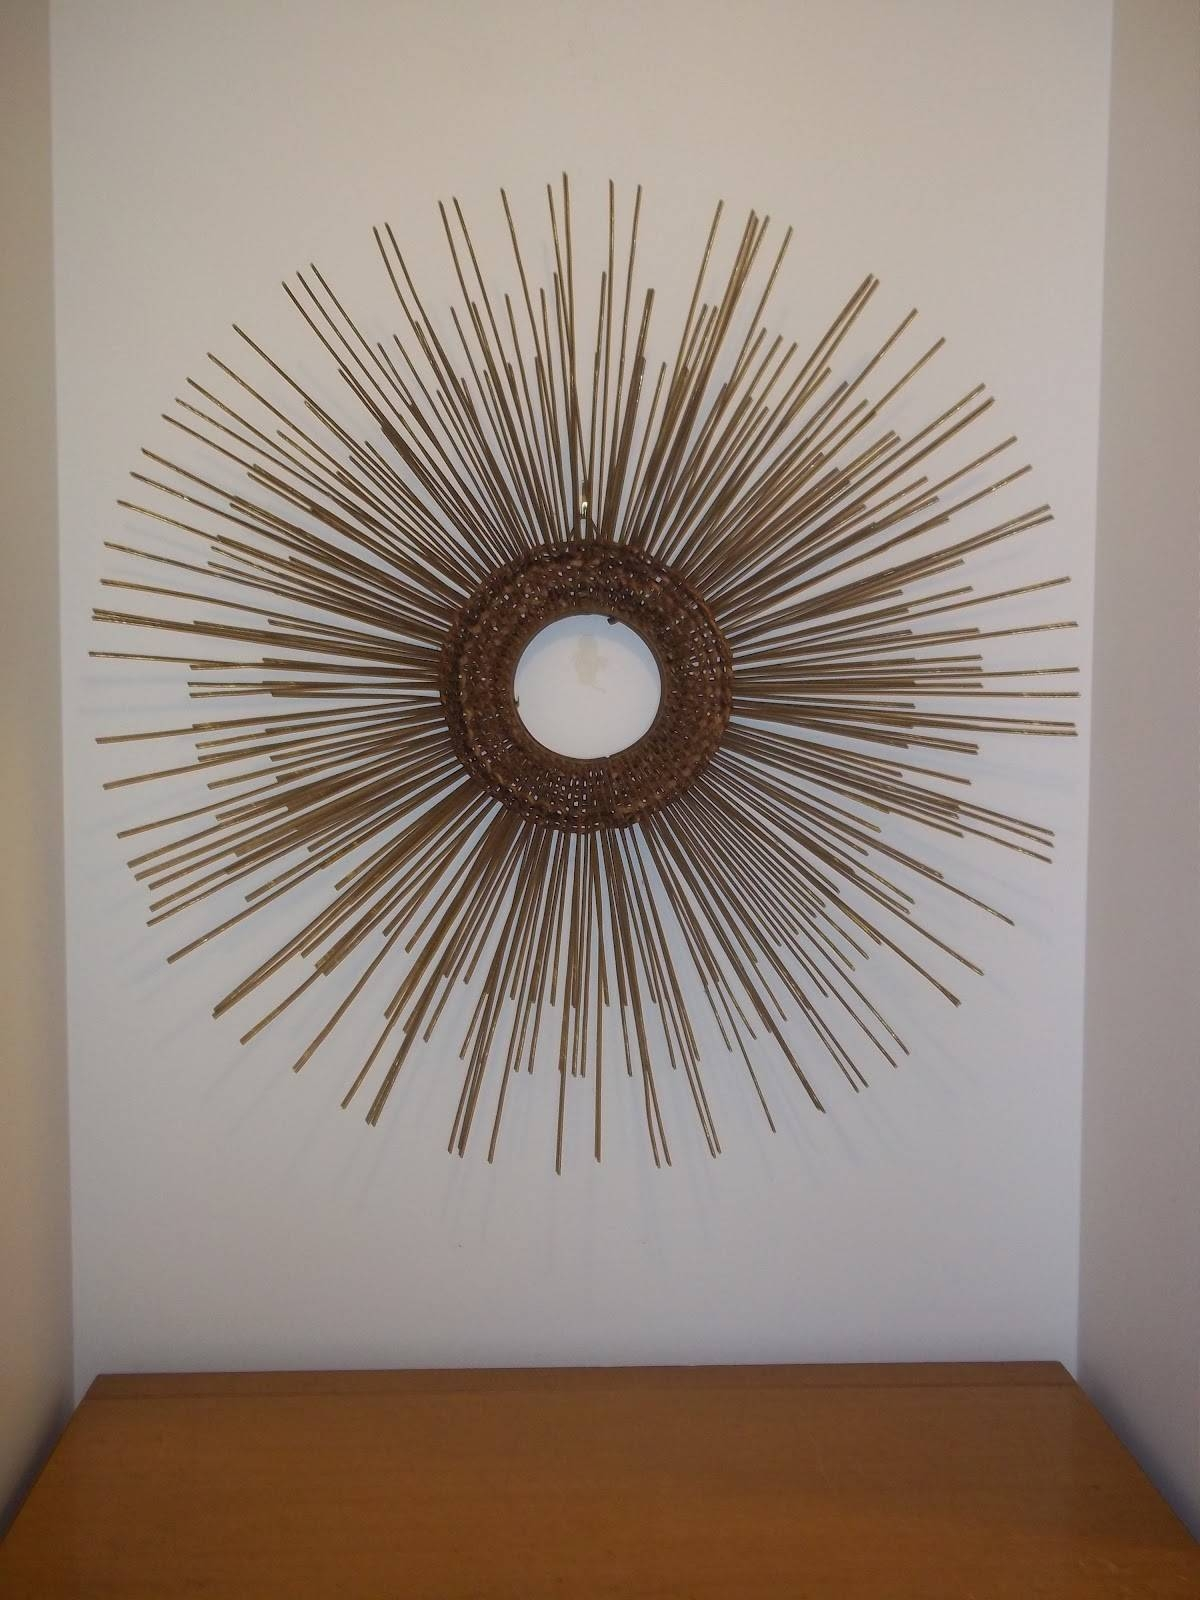 Modern20: Mid Century Modern Starburst Sculpture In The Style Of Throughout Current Mid Century Modern Metal Wall Art (View 17 of 20)